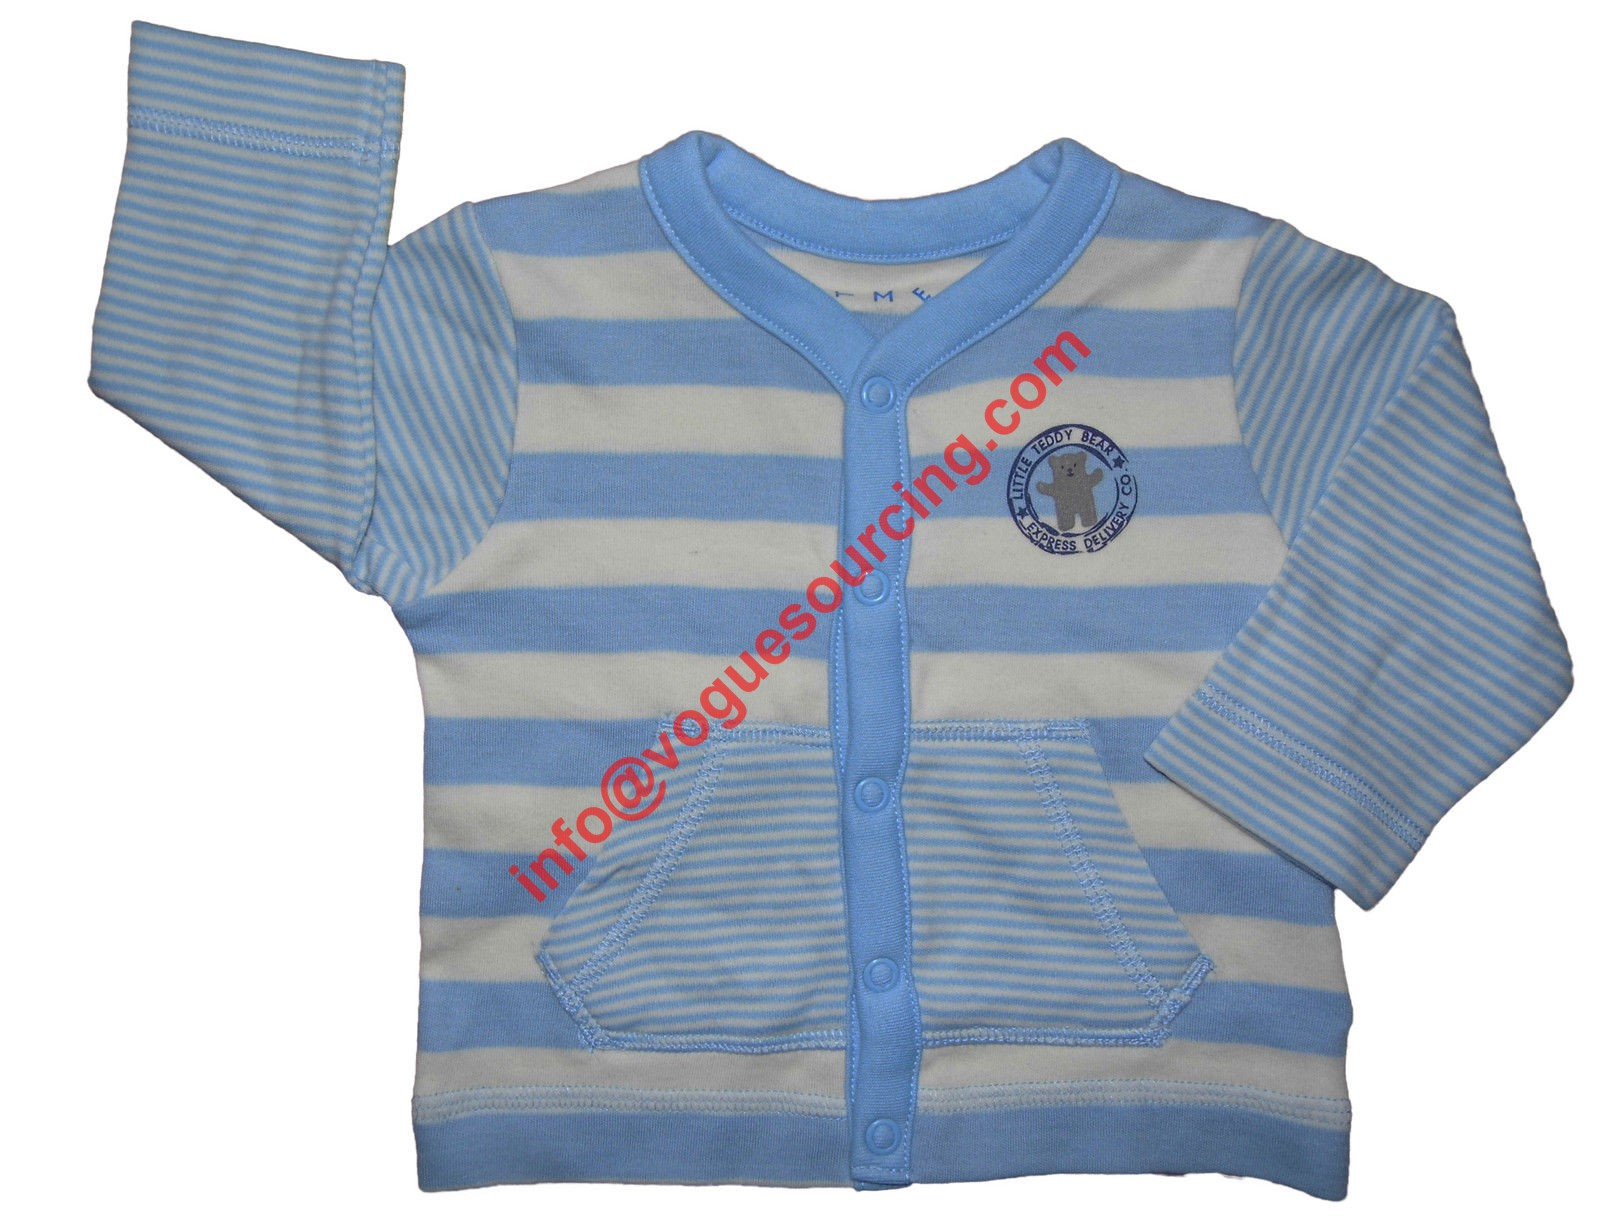 Baby Cardigan Sweater Manufacturers Supplier Exporters Vogue Sourcing